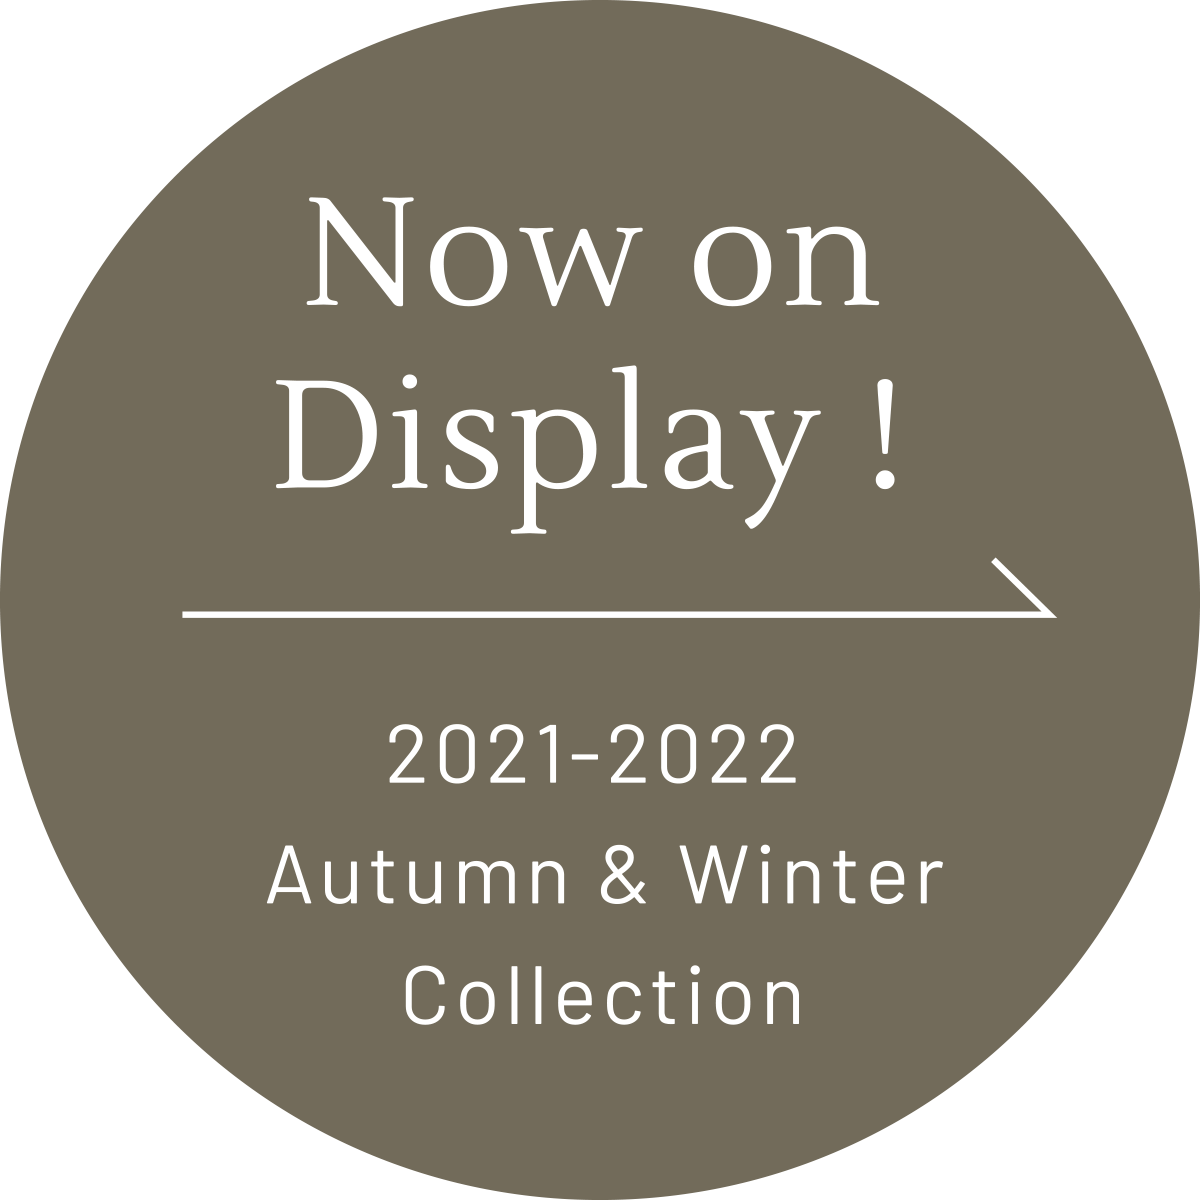 Now on Display ! 2021-2022 Autumn & Winter Collection